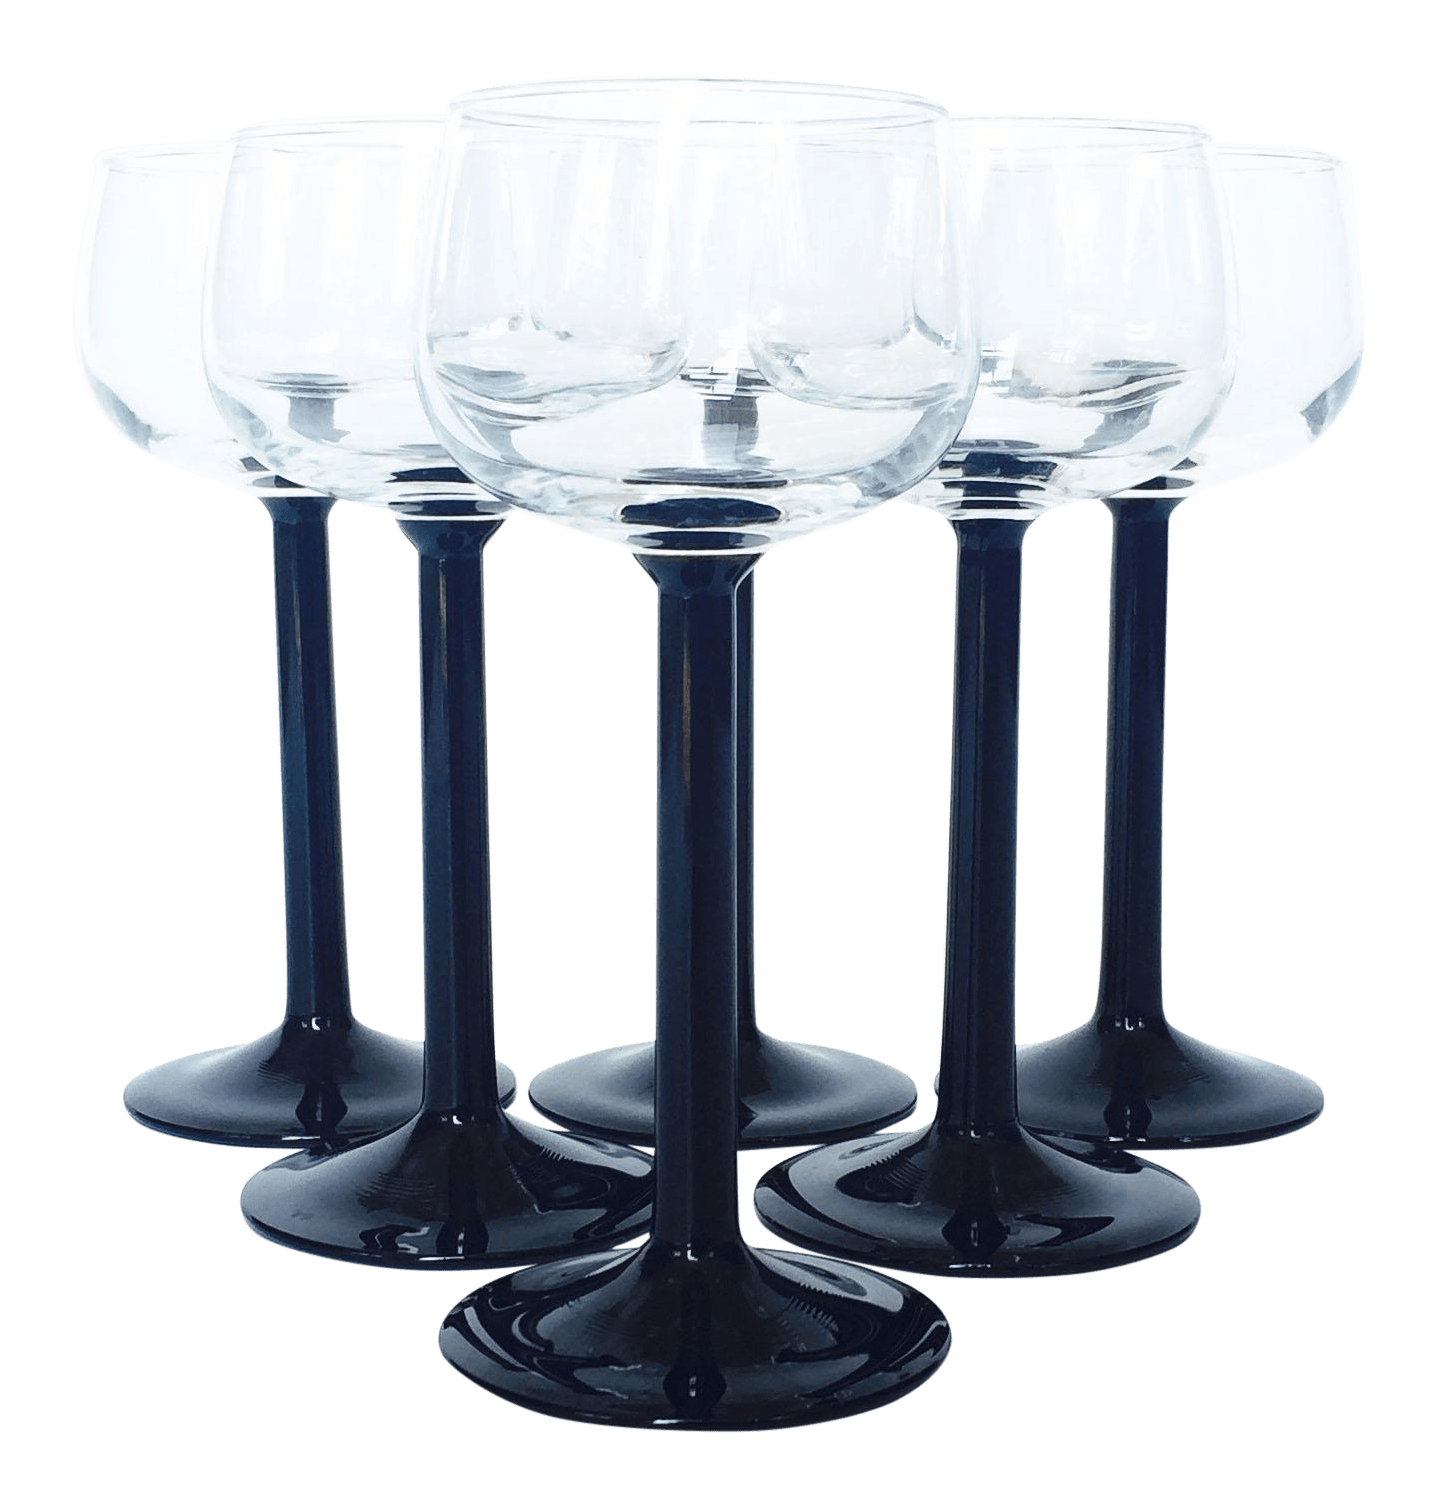 Luminarc Glass Vintage Luminarc Black Stemmed Wine Glasses Set Of 6